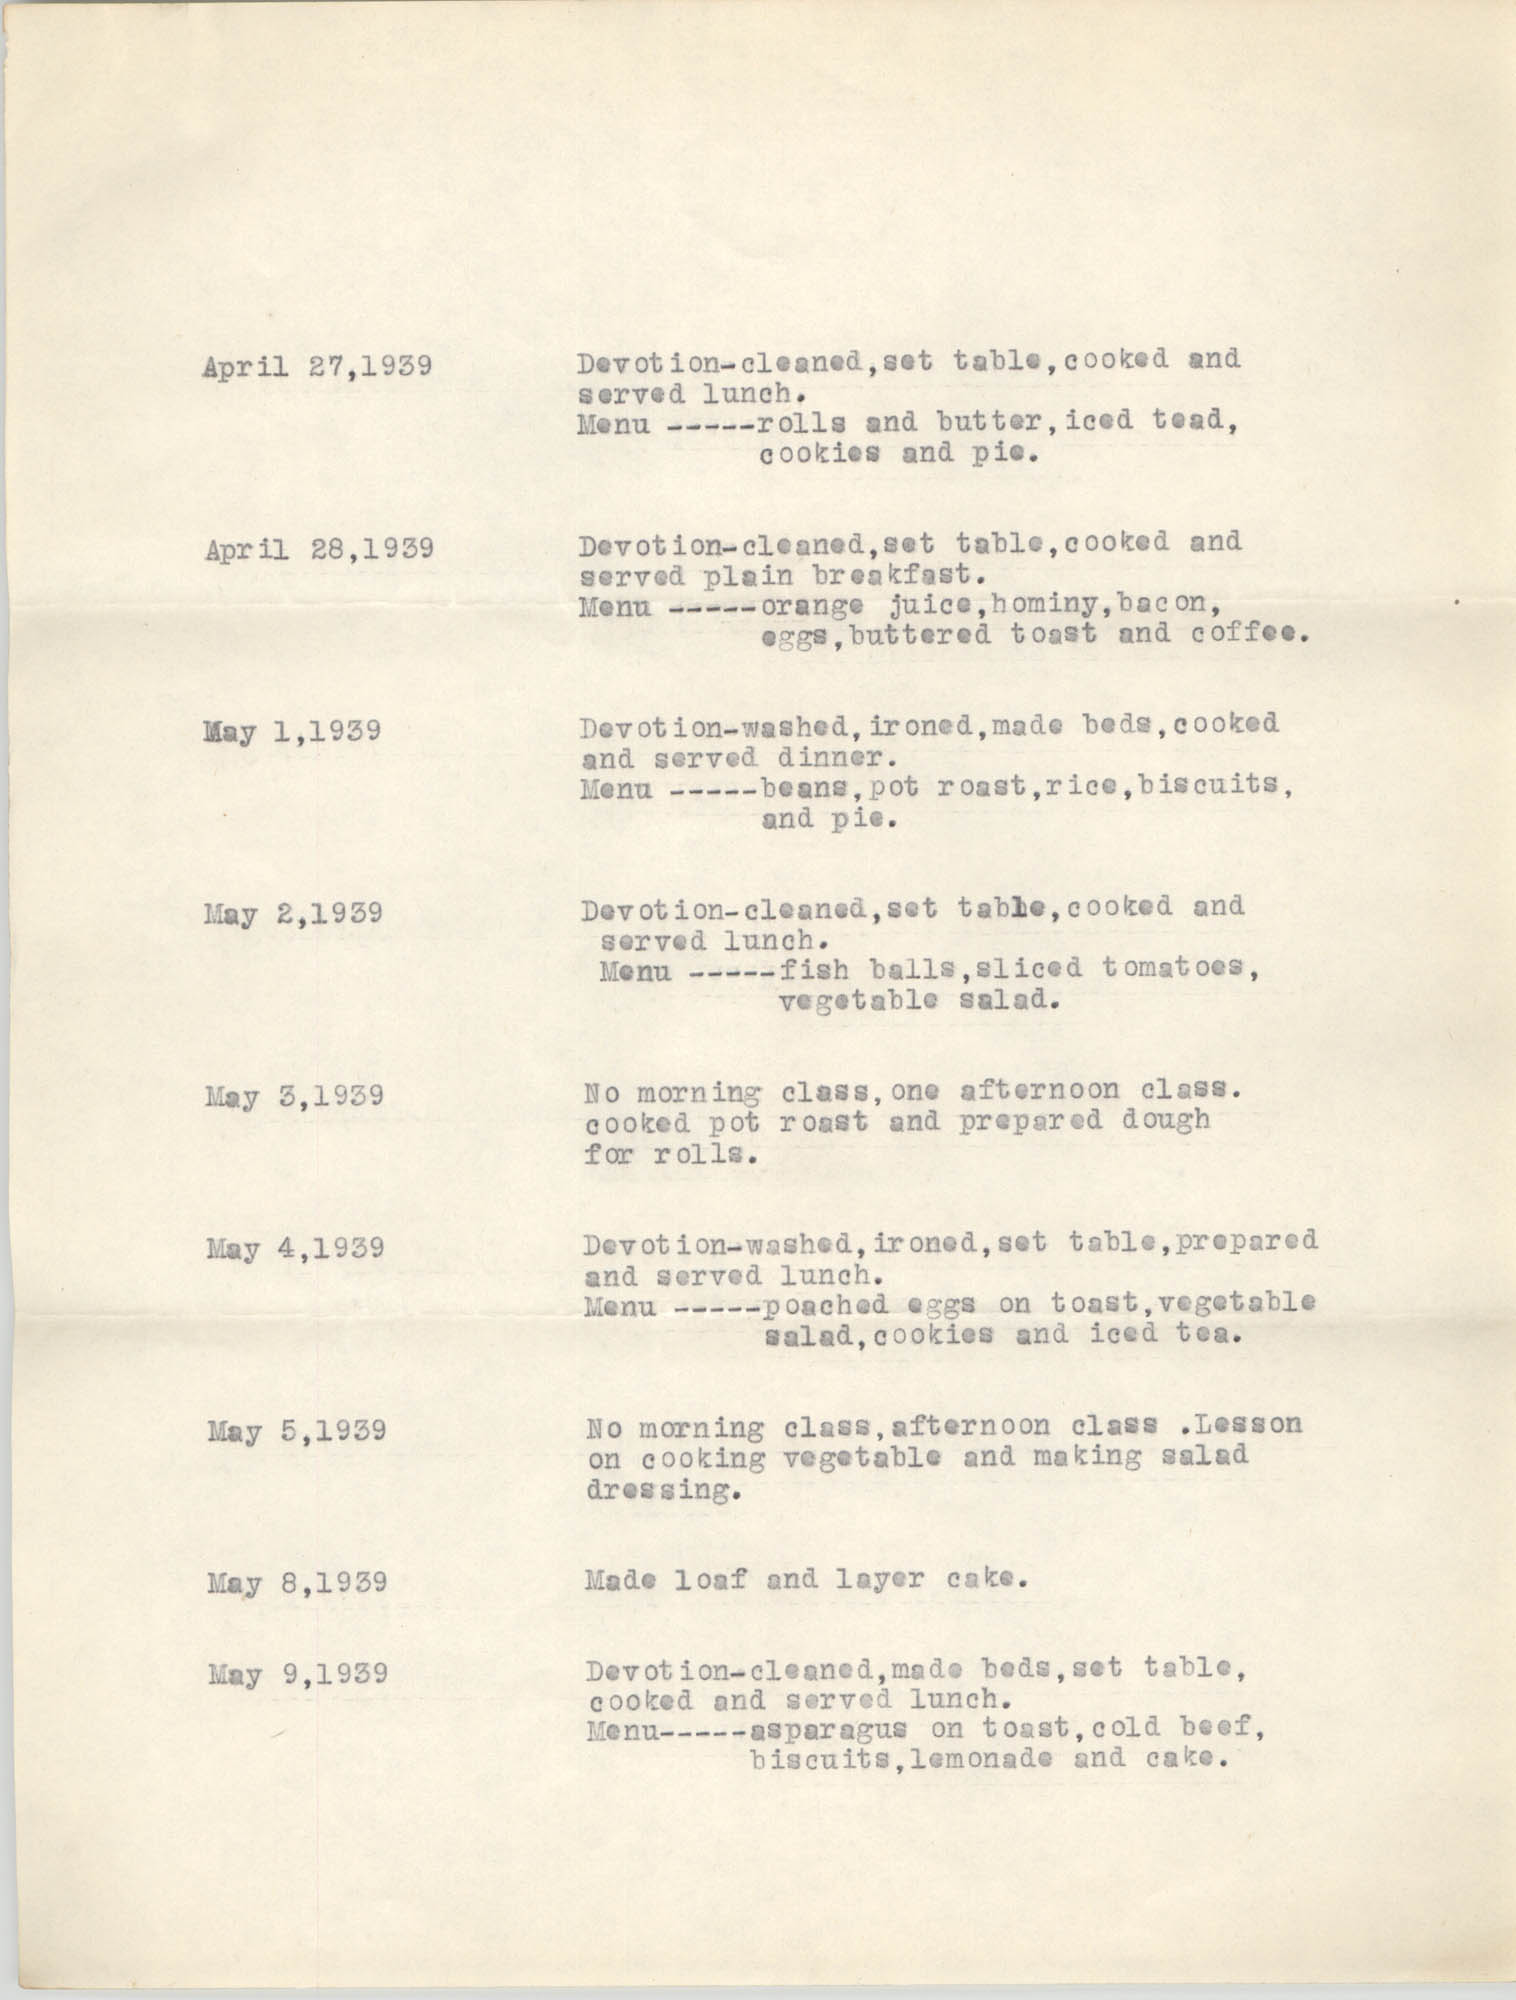 Monthly Report for the Coming Street Y.W.C.A., April 1939, Branch Training School, Page 2